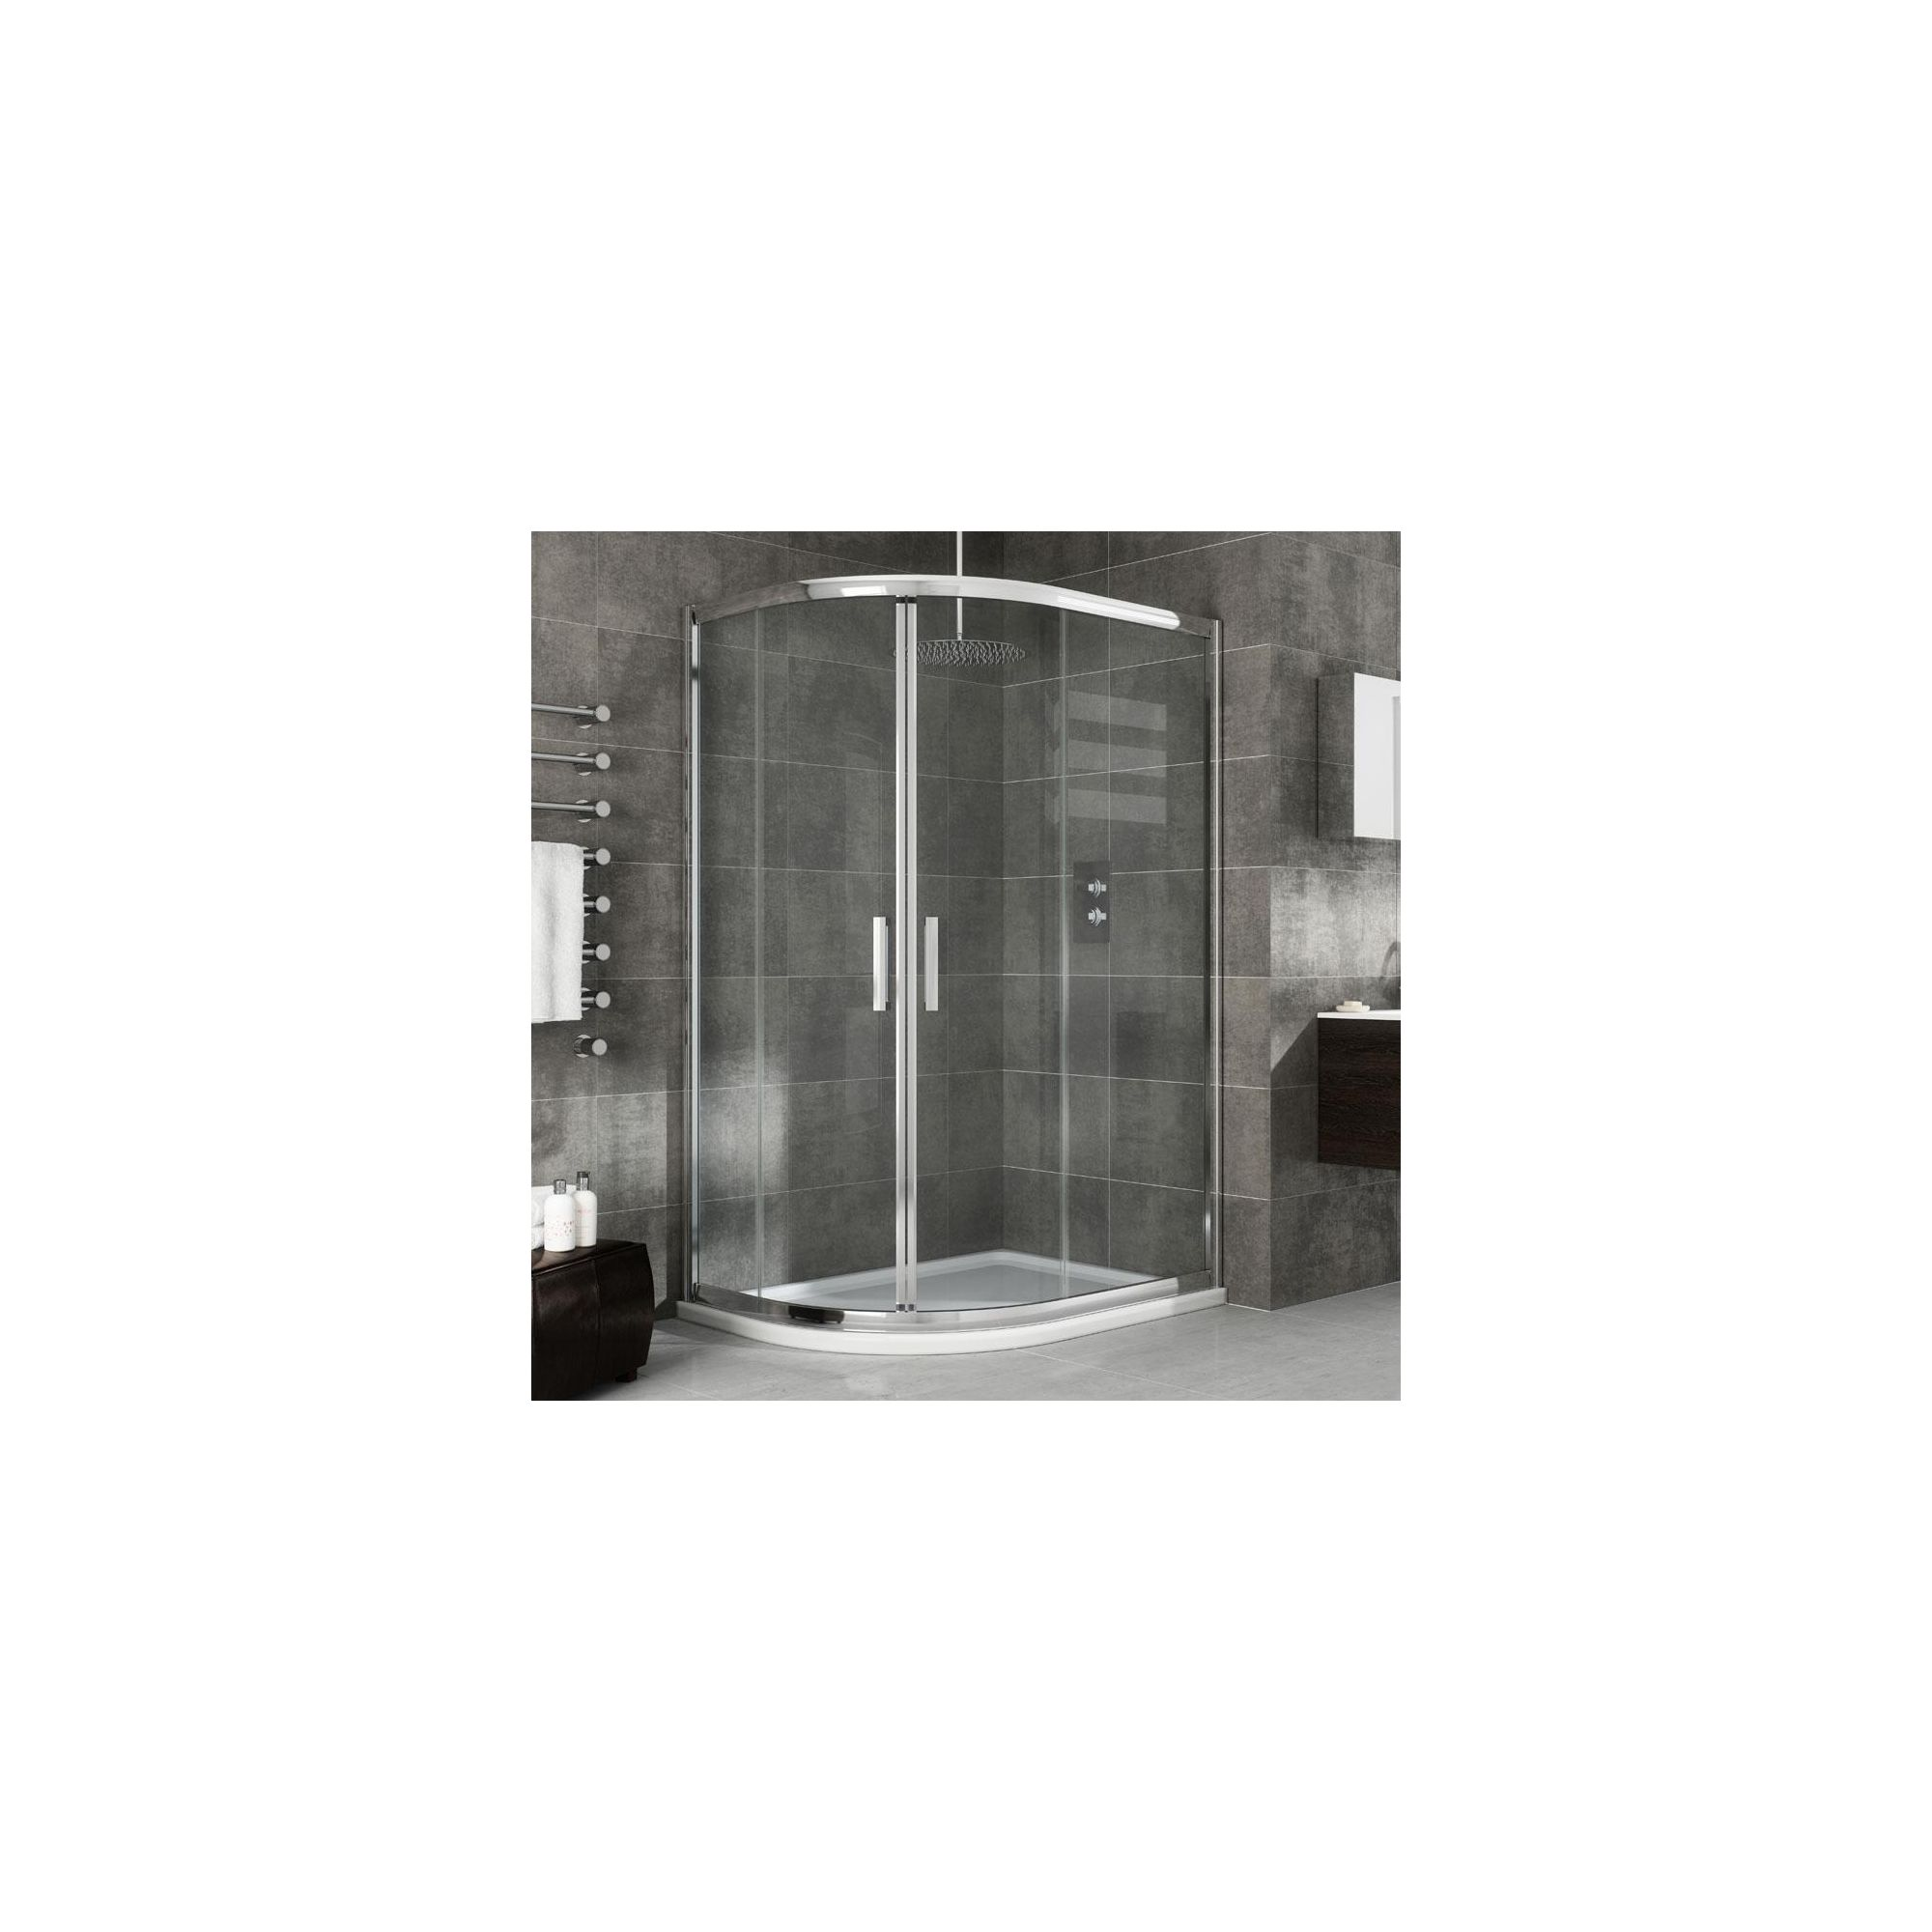 Elemis Eternity Offset Quadrant Shower Enclosure, 900mm x 800mm, 8mm Glass, Low Profile Tray, Right Handed at Tesco Direct